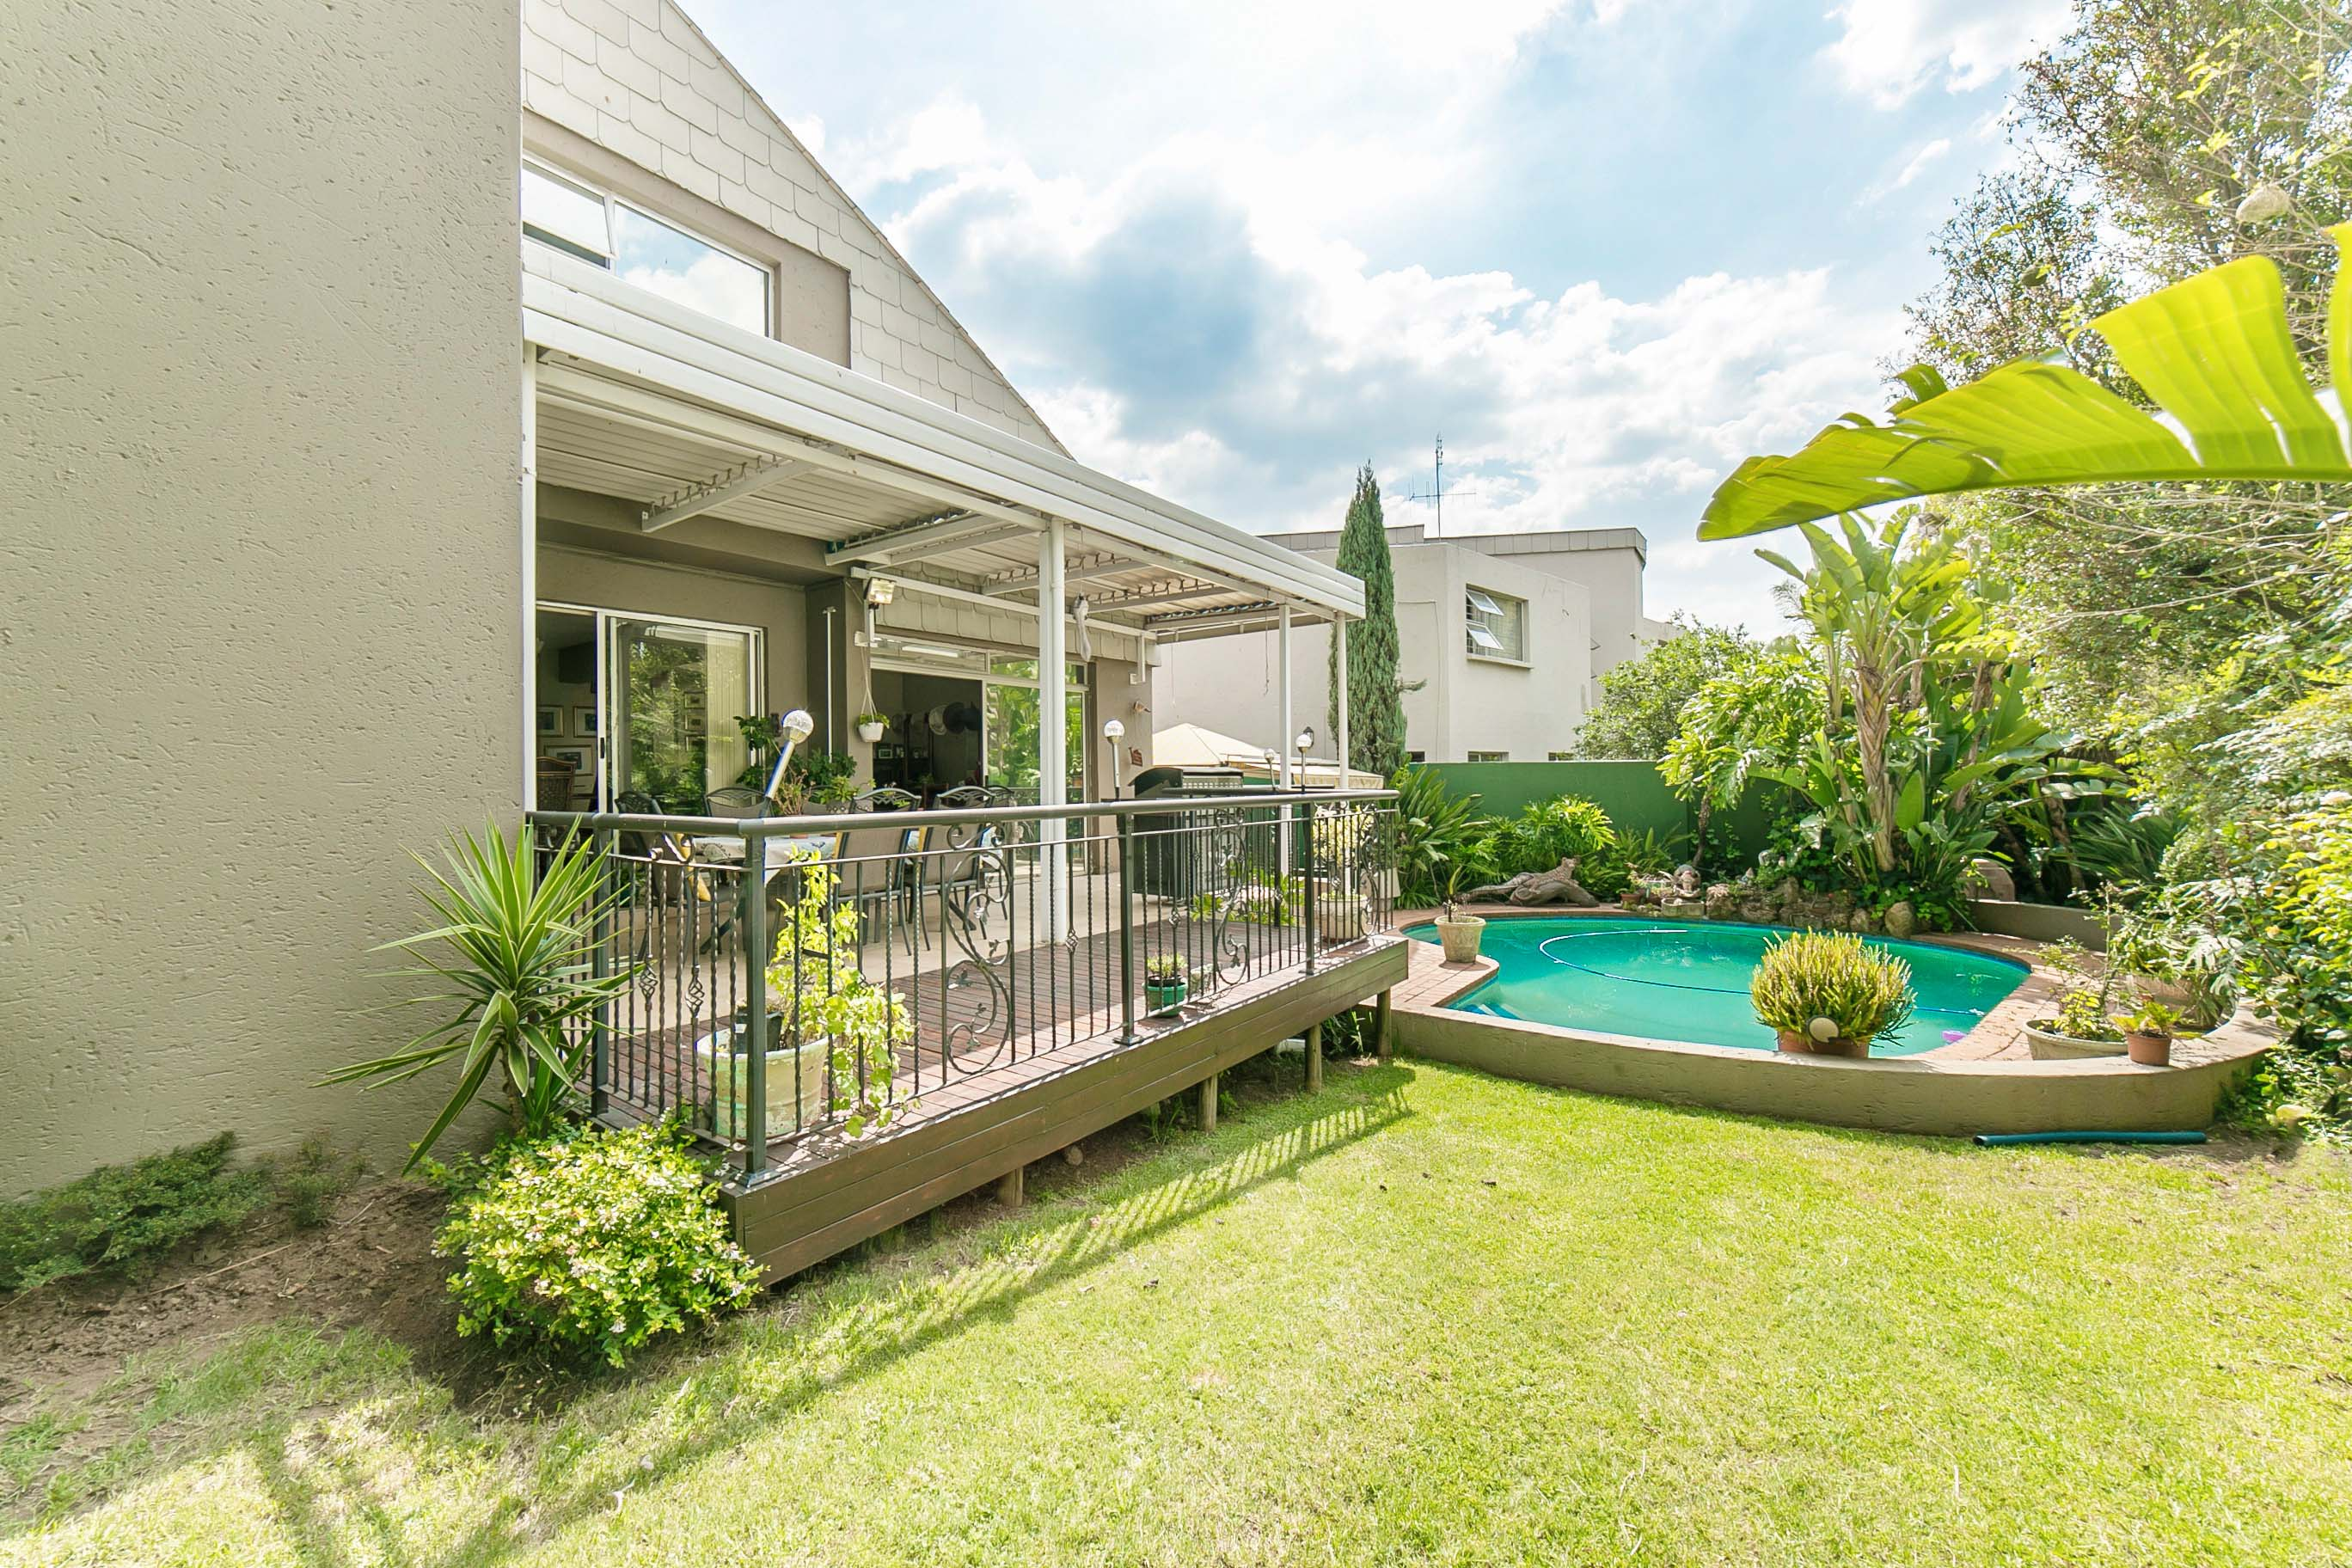 4 Bedroom House for sale in Lonehill ENT0082001 : photo#26